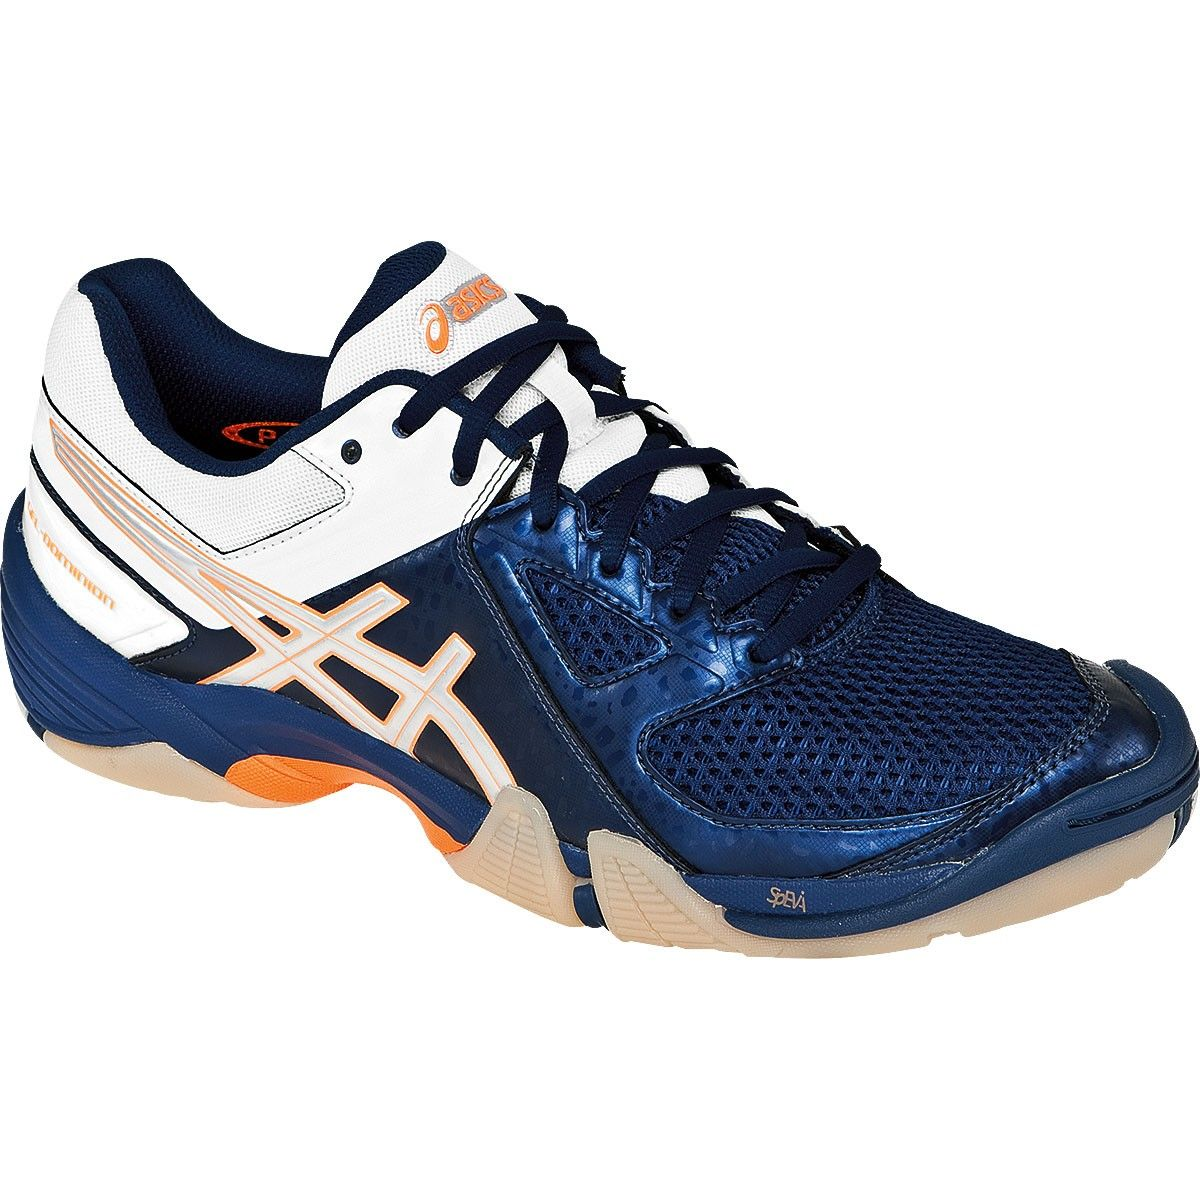 You Are Being Redirected Mens Volleyball Shoes Volleyball Shoes Asics